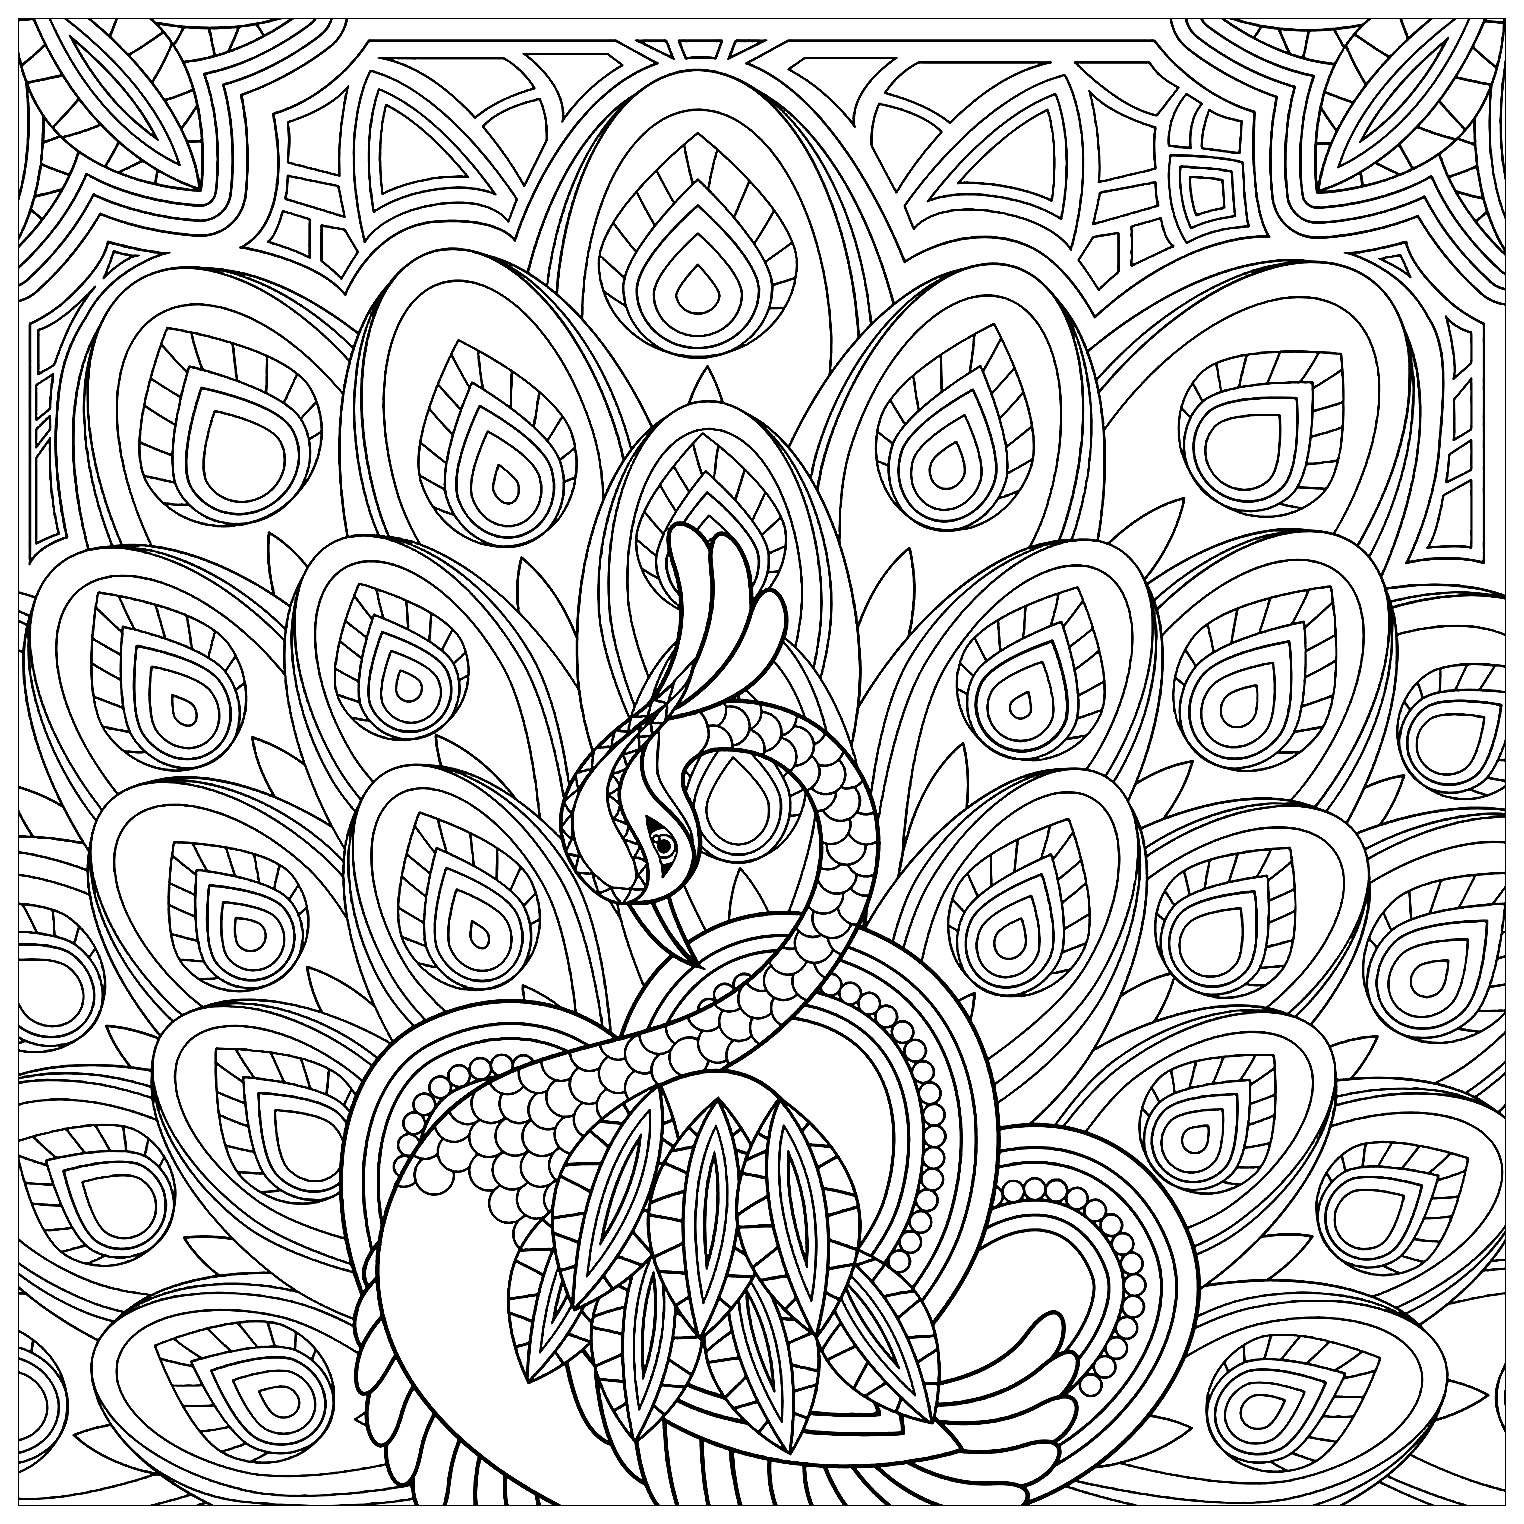 peacock coloring pages for adults elegant peacock and its blue feathers peacocks adult for coloring adults pages peacock